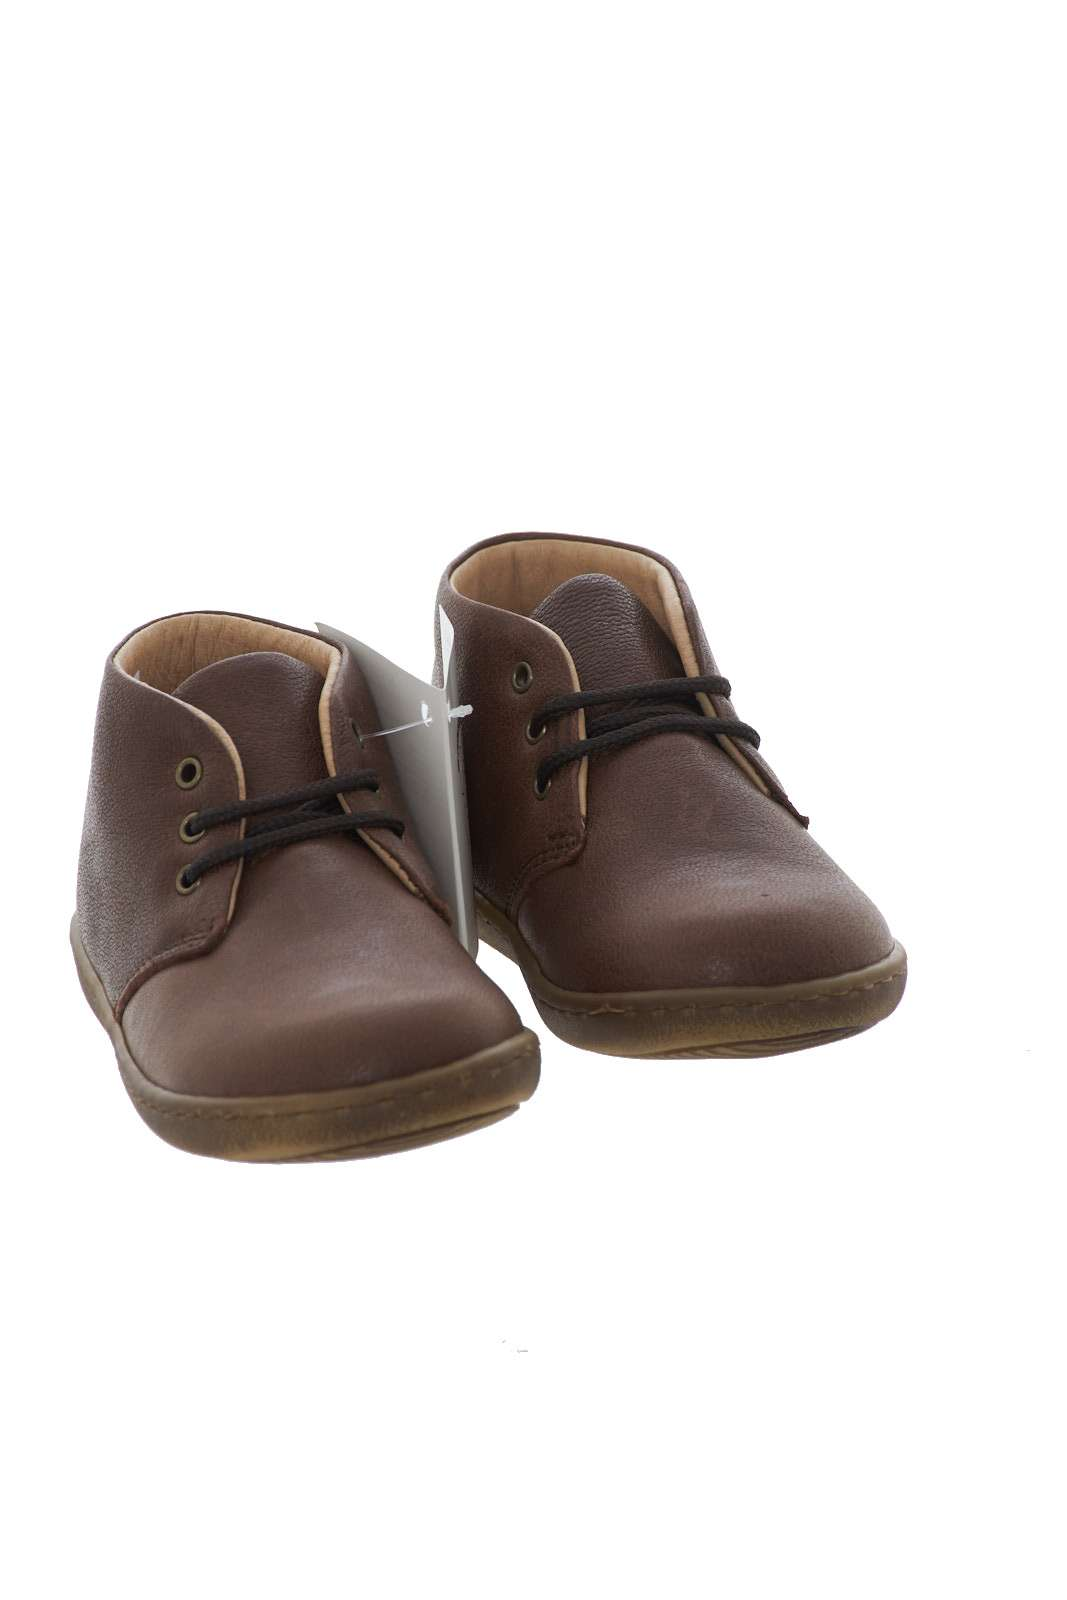 https://www.parmax.com/media/catalog/product/A/I/AI-outlet_parmax-scarpe-bambino-Gioiecologiche-3017-B.jpg